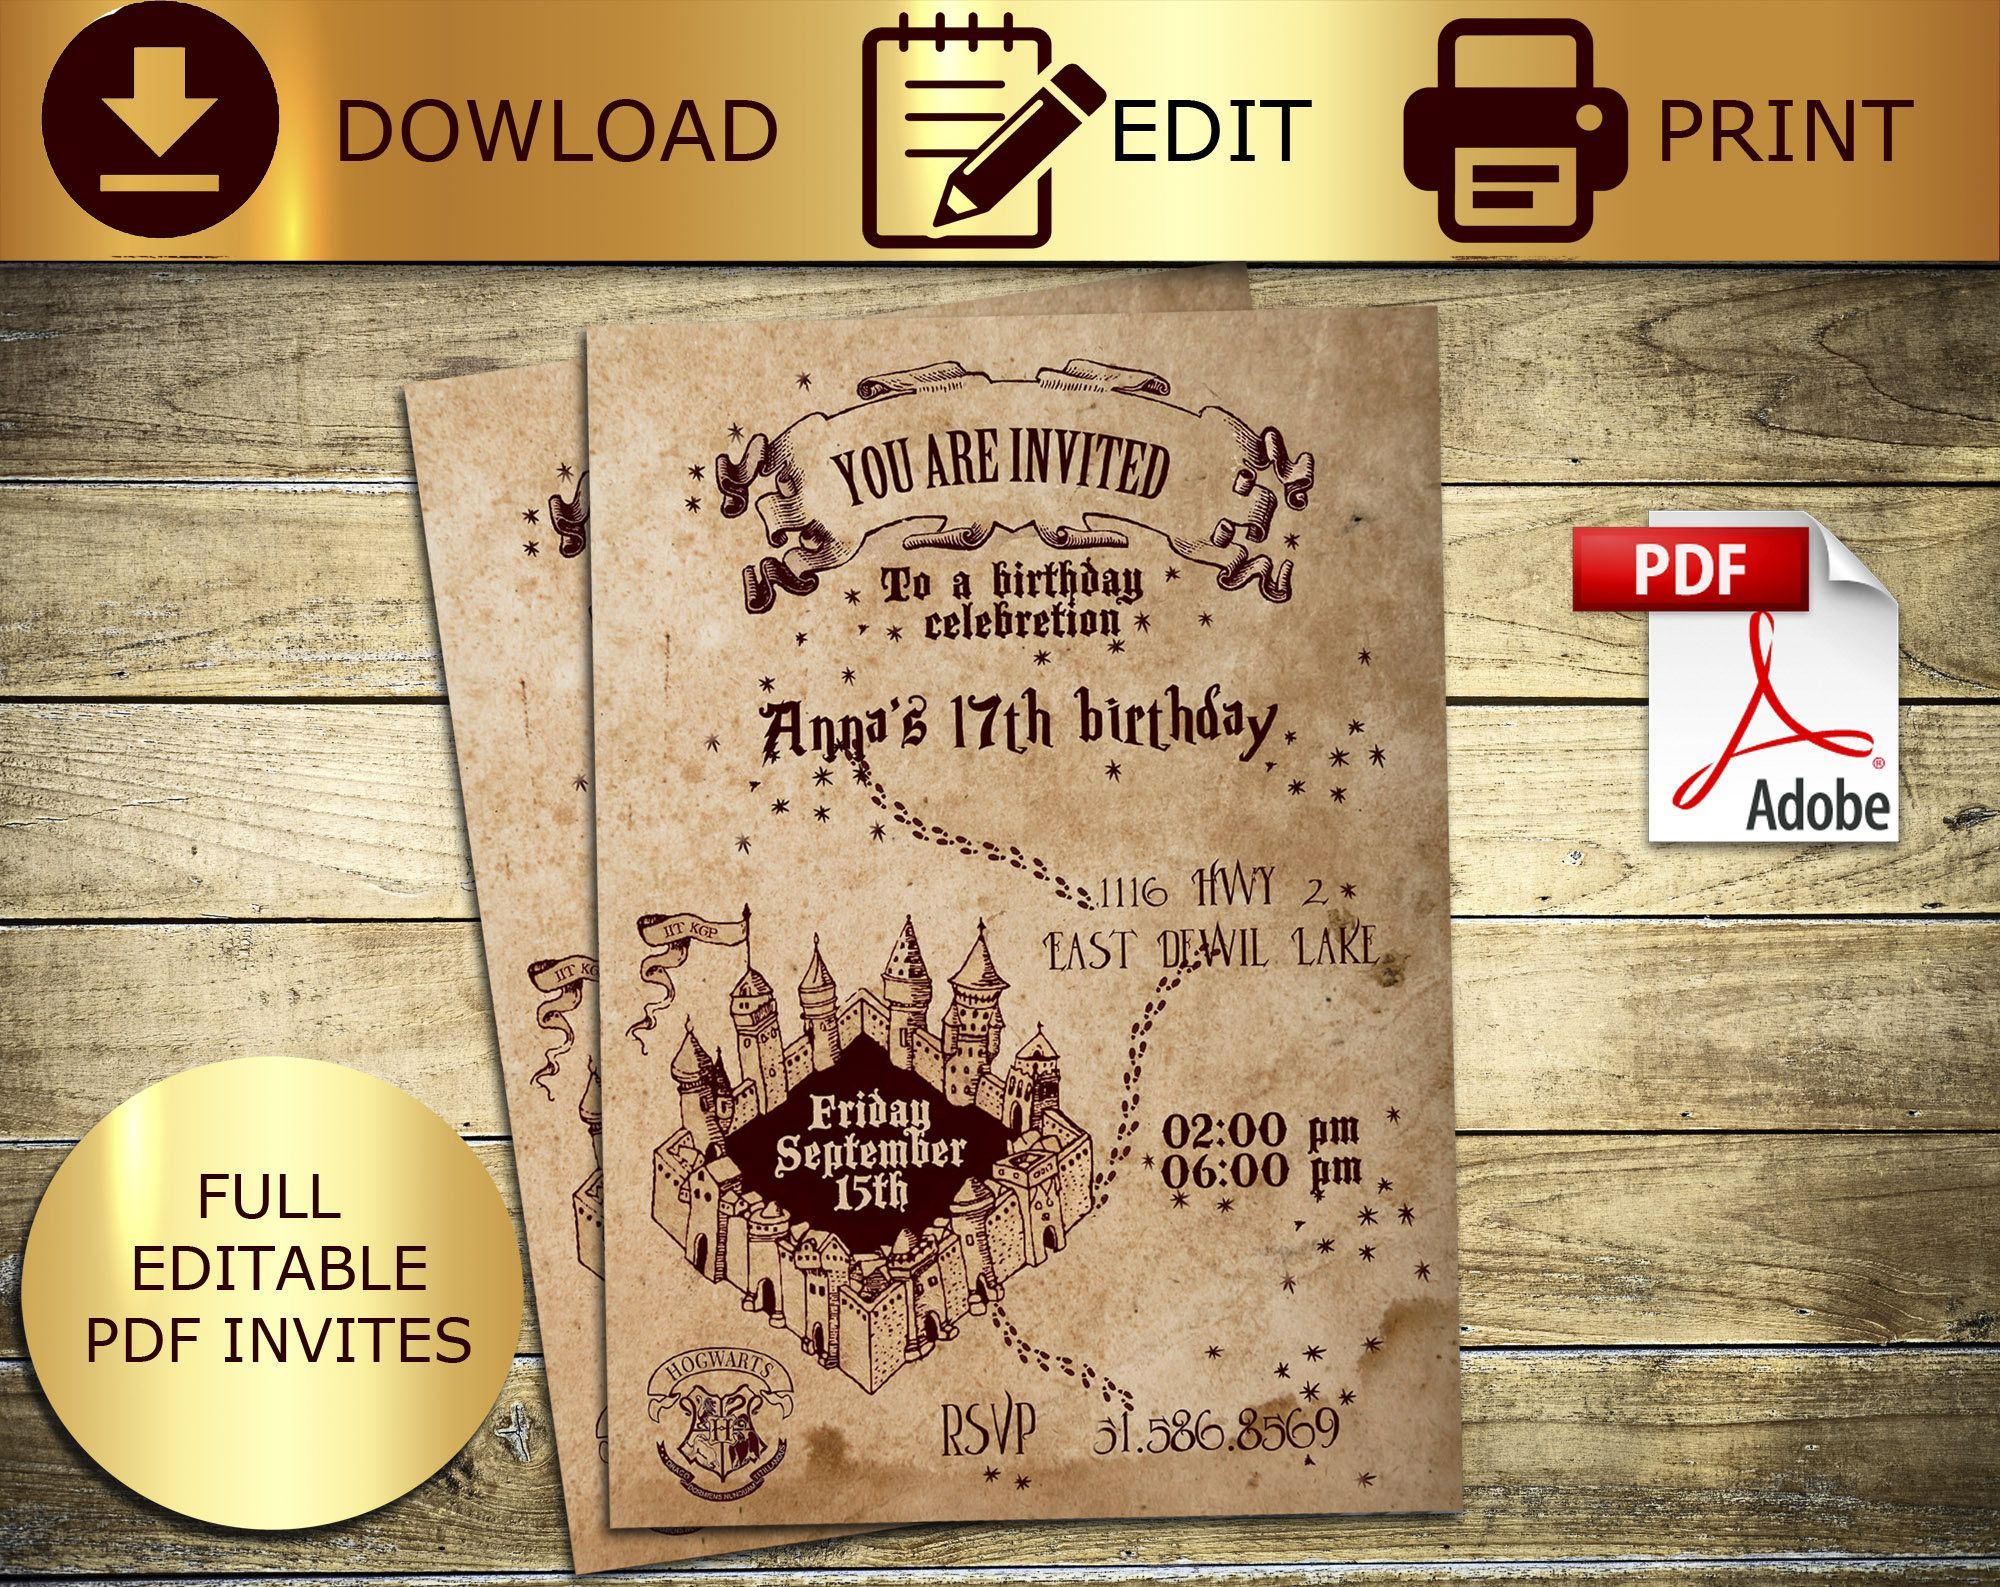 Marauders Map Harry Potter Invitation Hogwarts Invitation Hogwarts